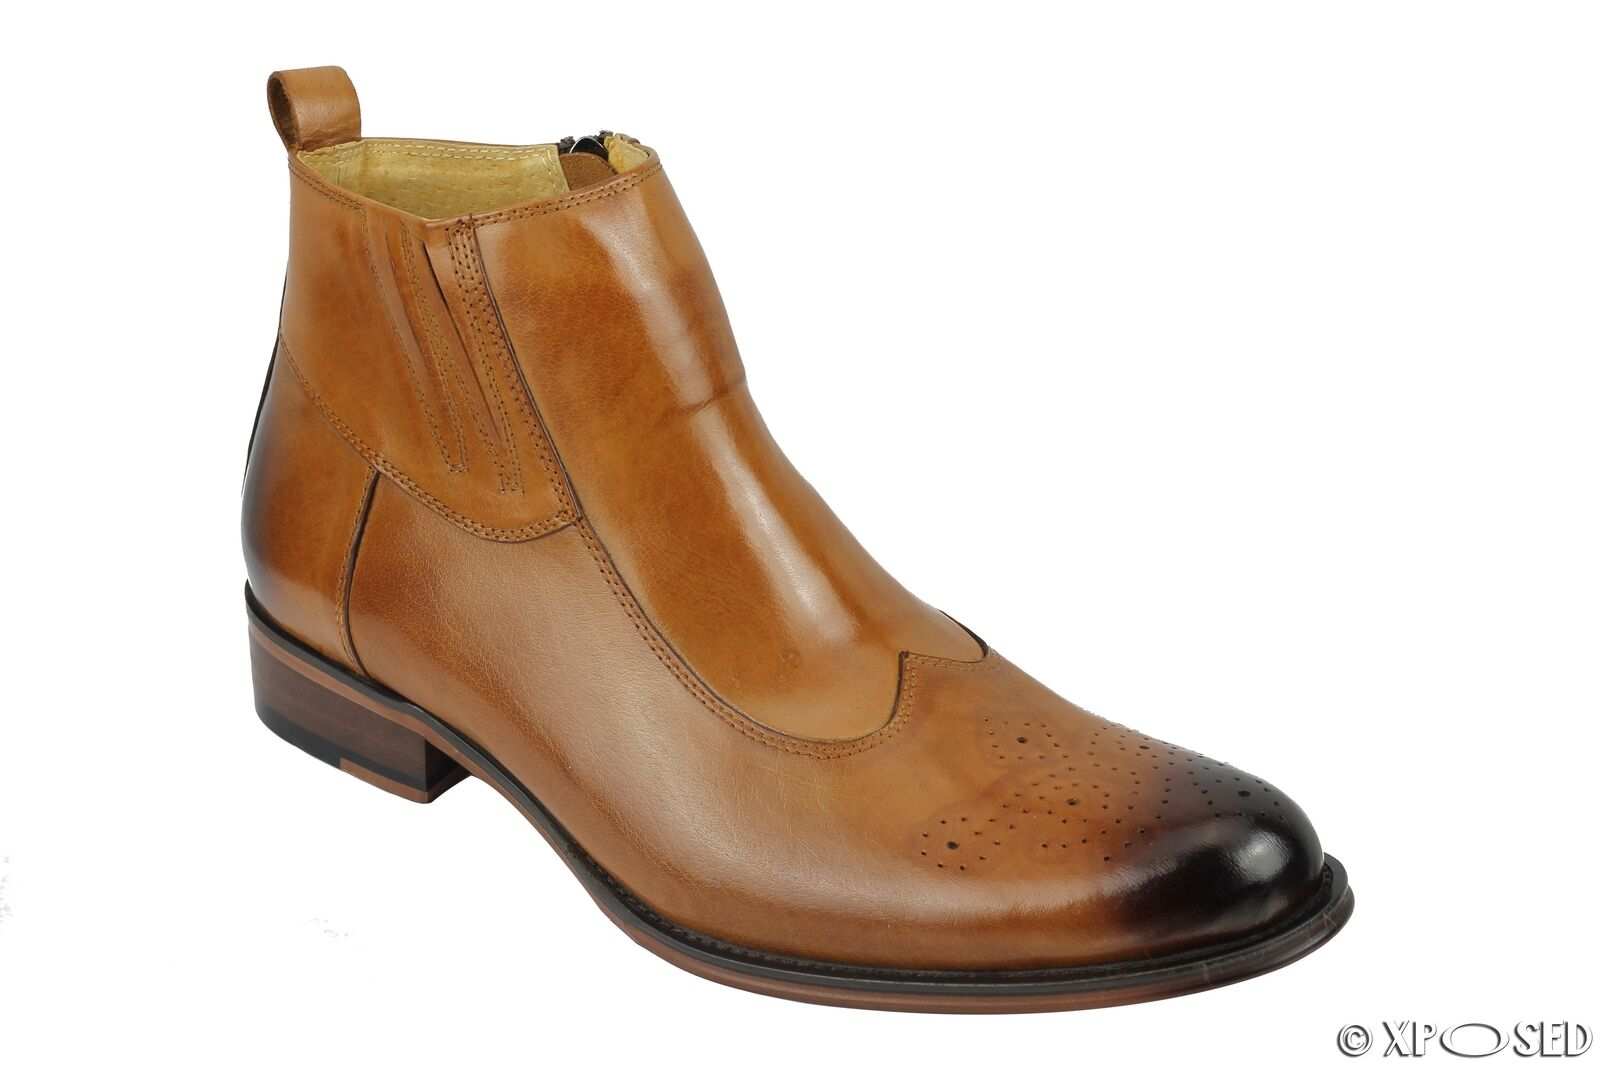 Uomo Vera Pelle Tan Brown CERNIERA LATERALE Casual Brogue Retrò Stivali Smart Casual LATERALE Vestito Scarpe b72b76